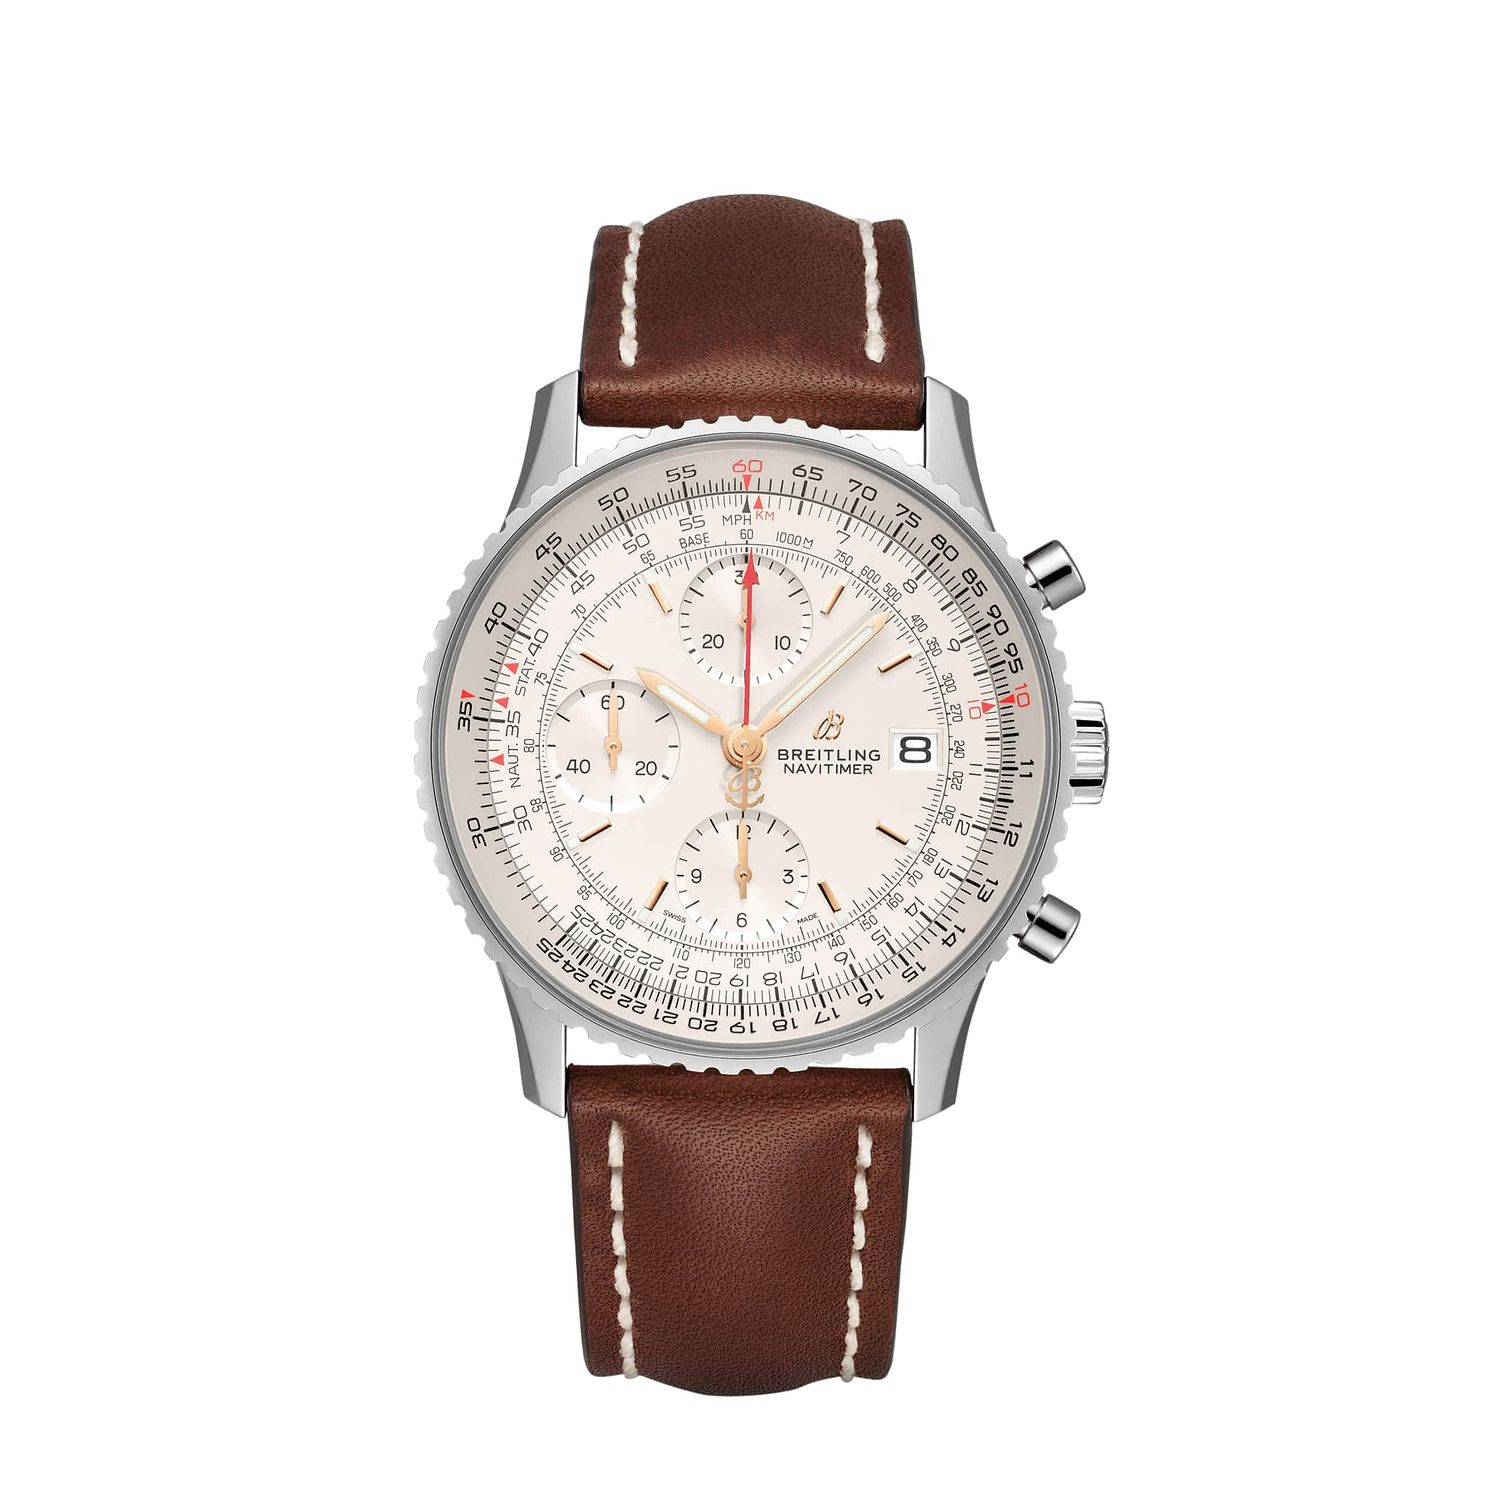 Breitling Navitimer 1 Men's Brown  Leather Strap Watch - Product number 9304266